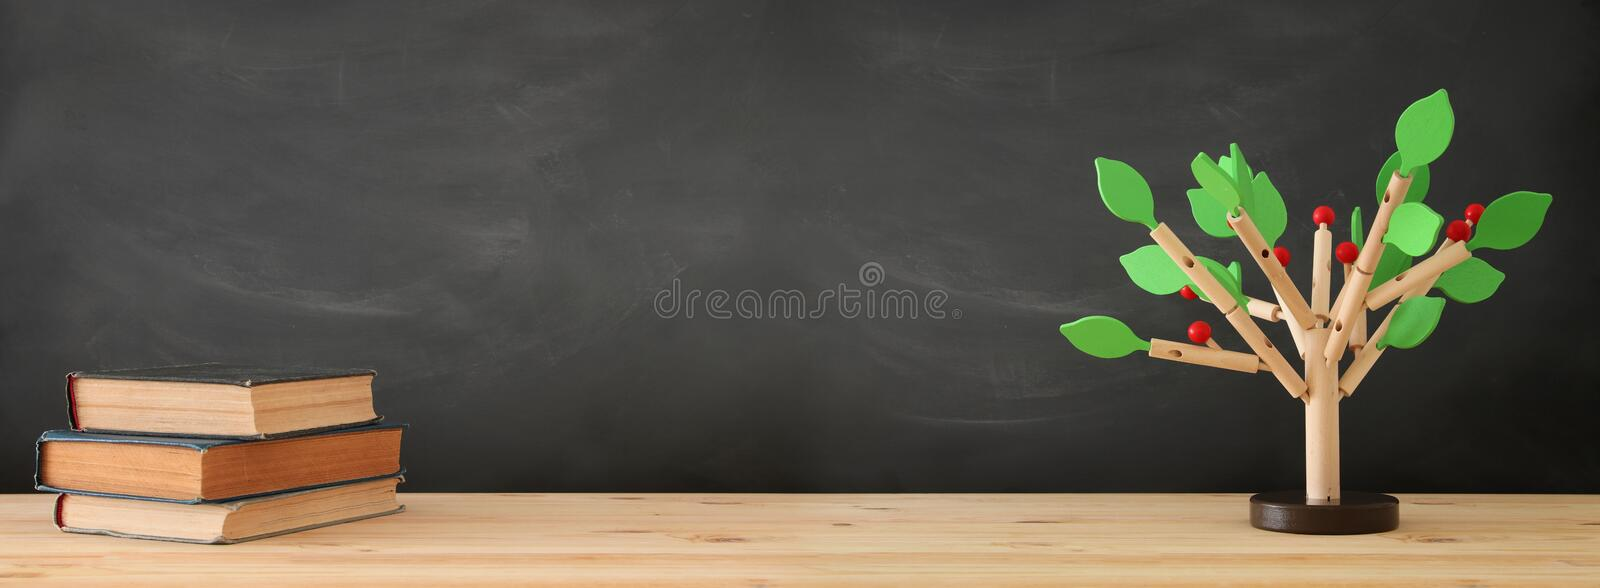 banner of open book and wooden tree puzzle over blackboard background. education and knowledge concept. royalty free stock image